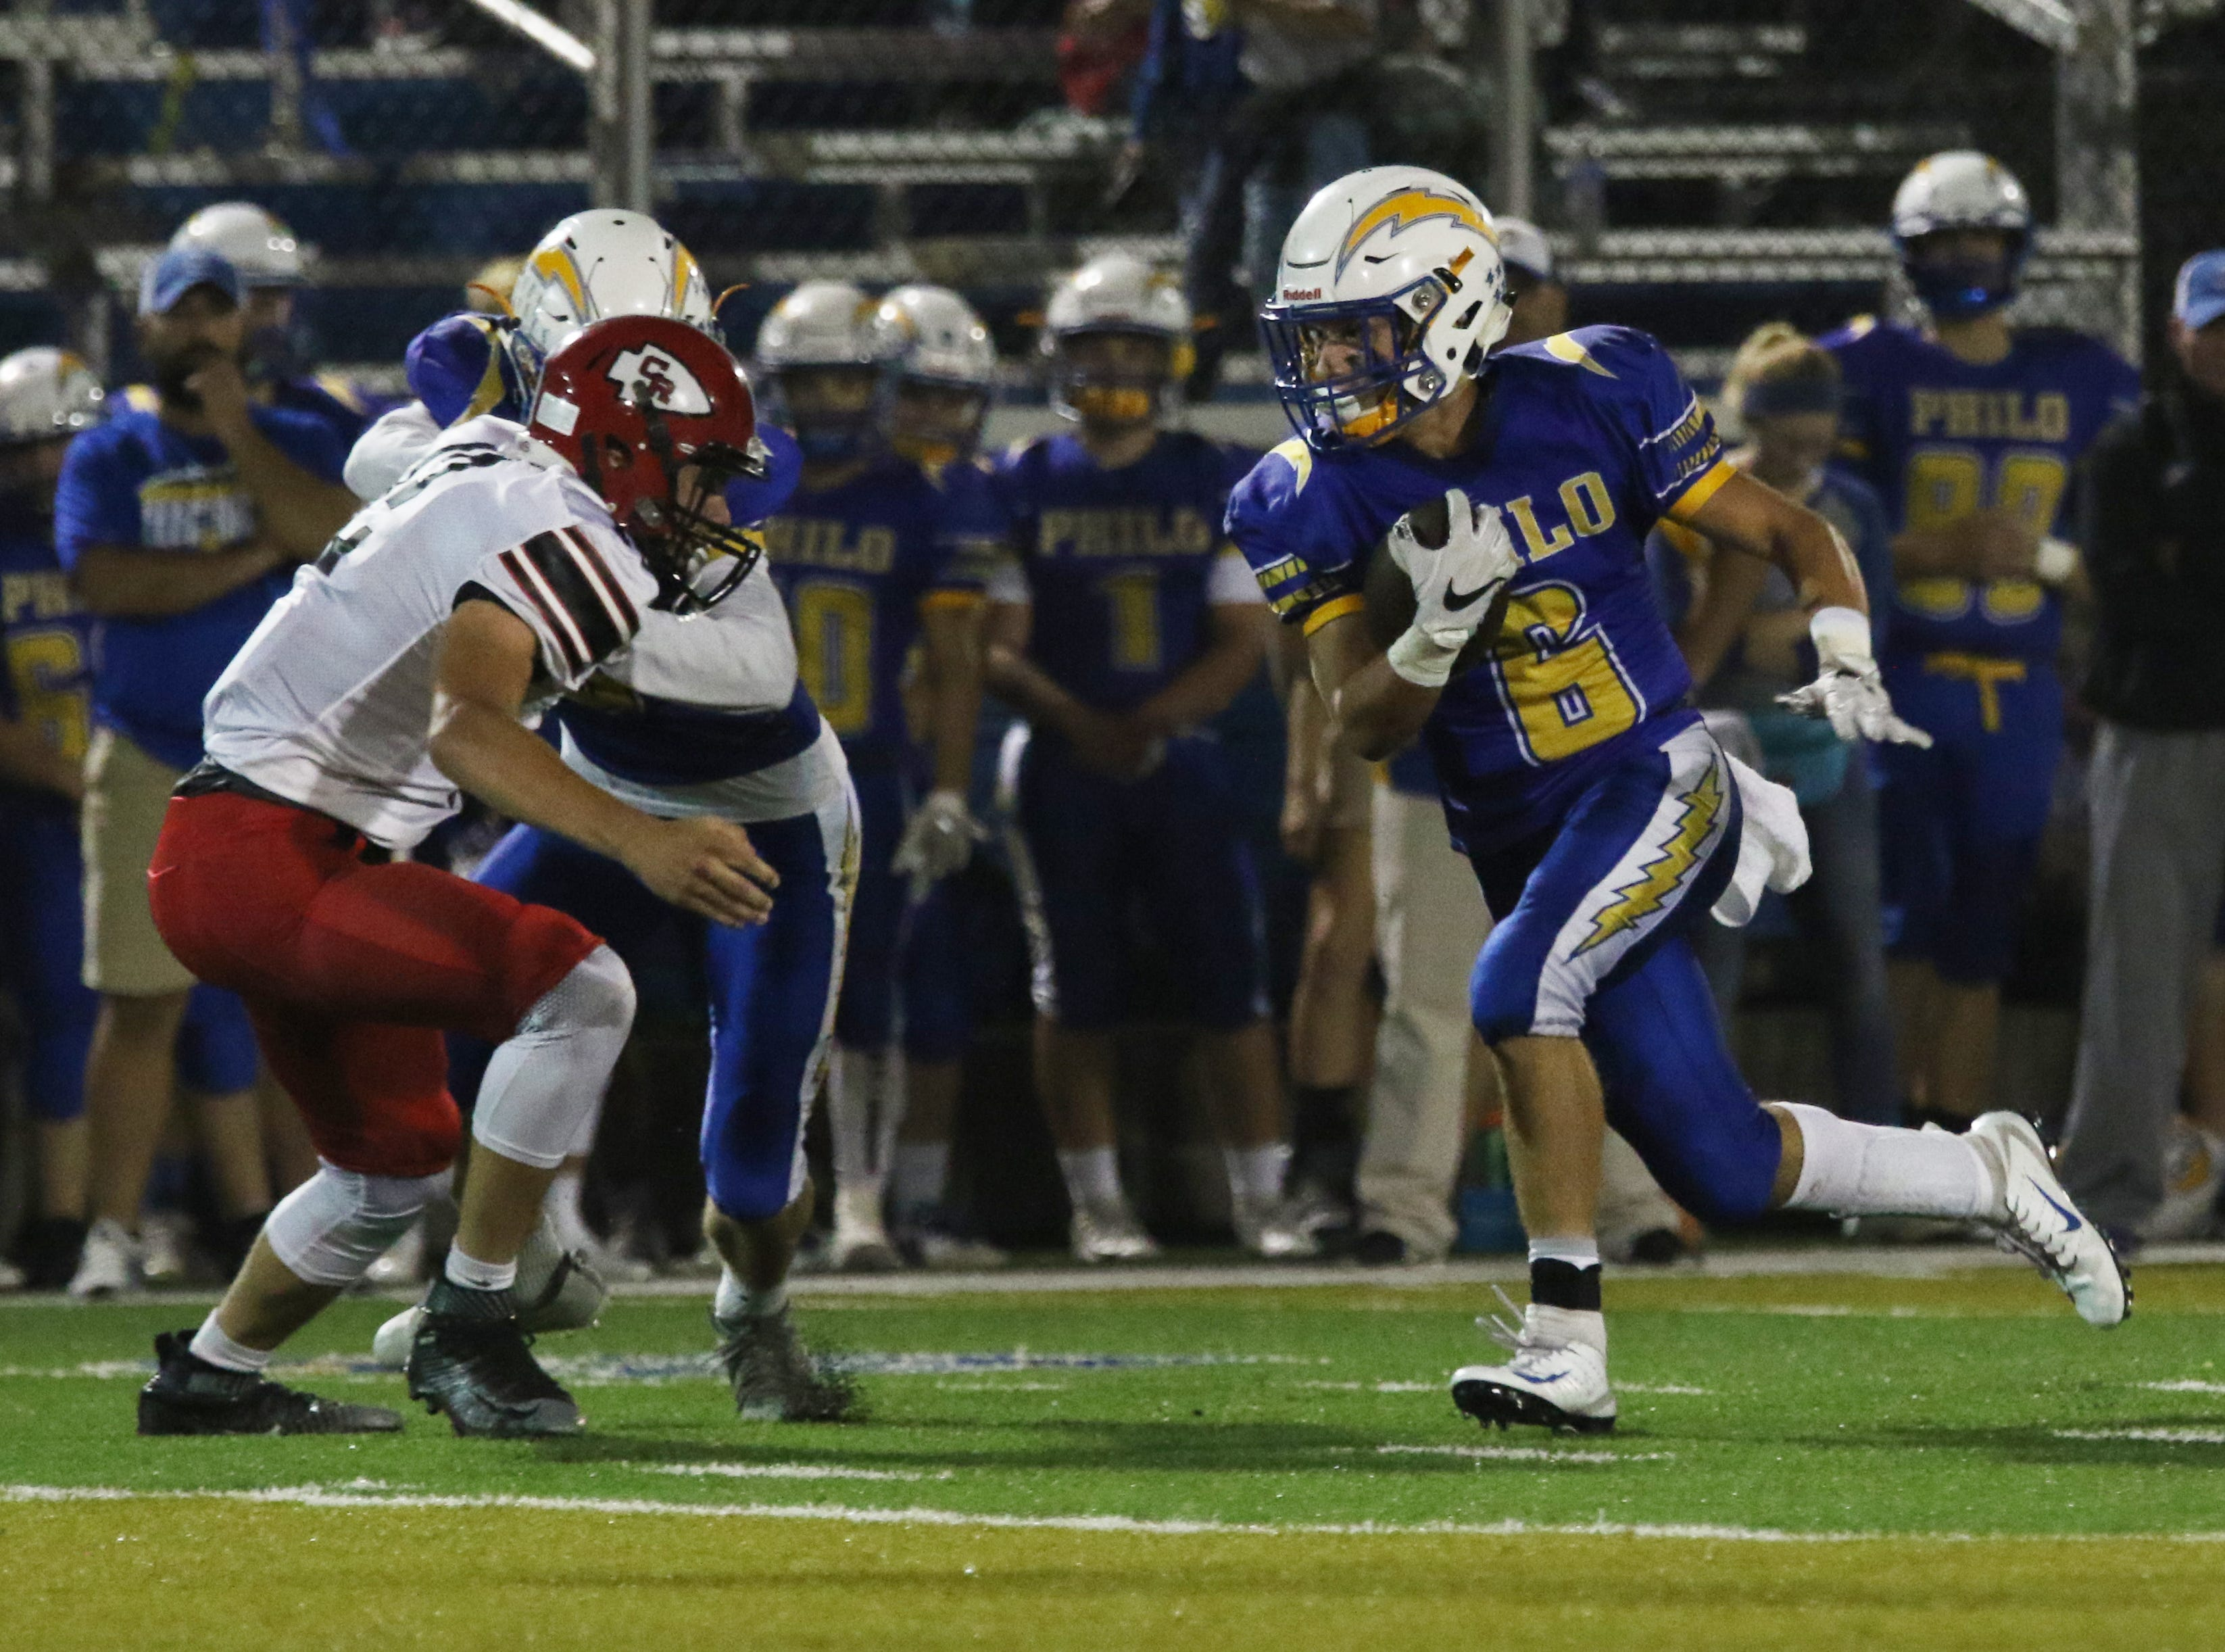 Philo beat visiting Coshocton 35-7 Friday night in Duncan Falls.